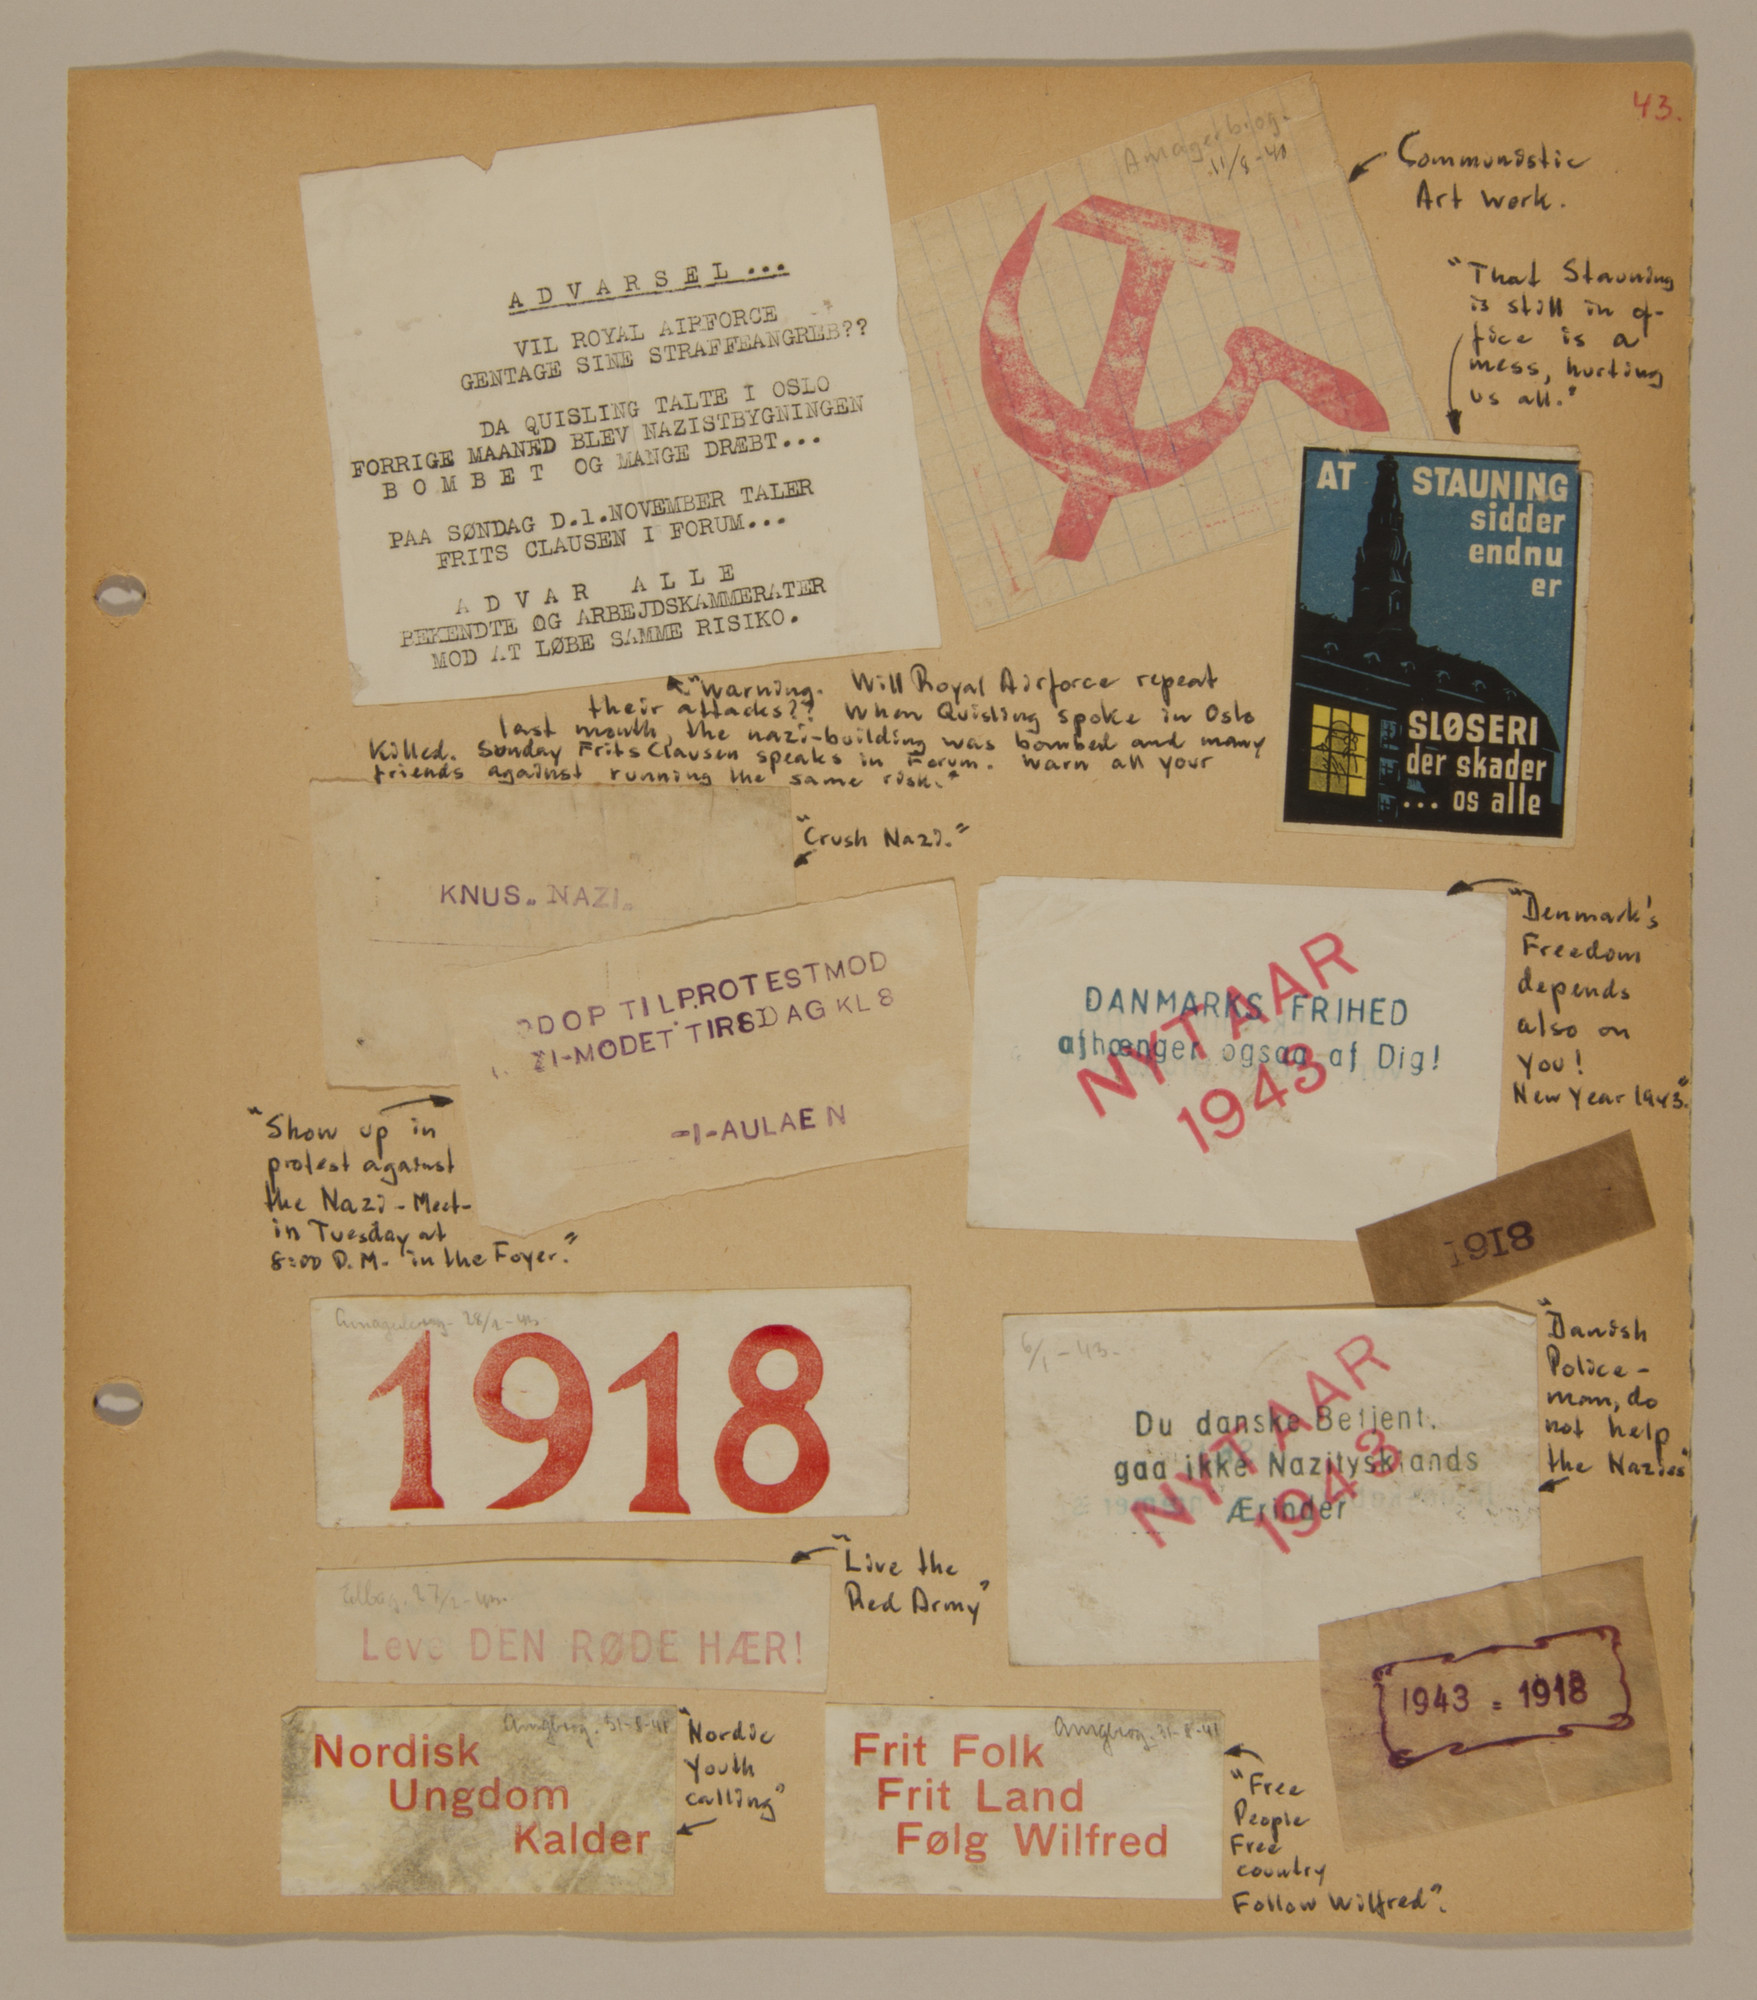 Page from volume three of a set of scrapbooks compiled by Bjorn Sibbern, a Danish policeman and resistance member, documenting the German occupation of Denmark.  This page contains a collection of anti-Nazi handbills.